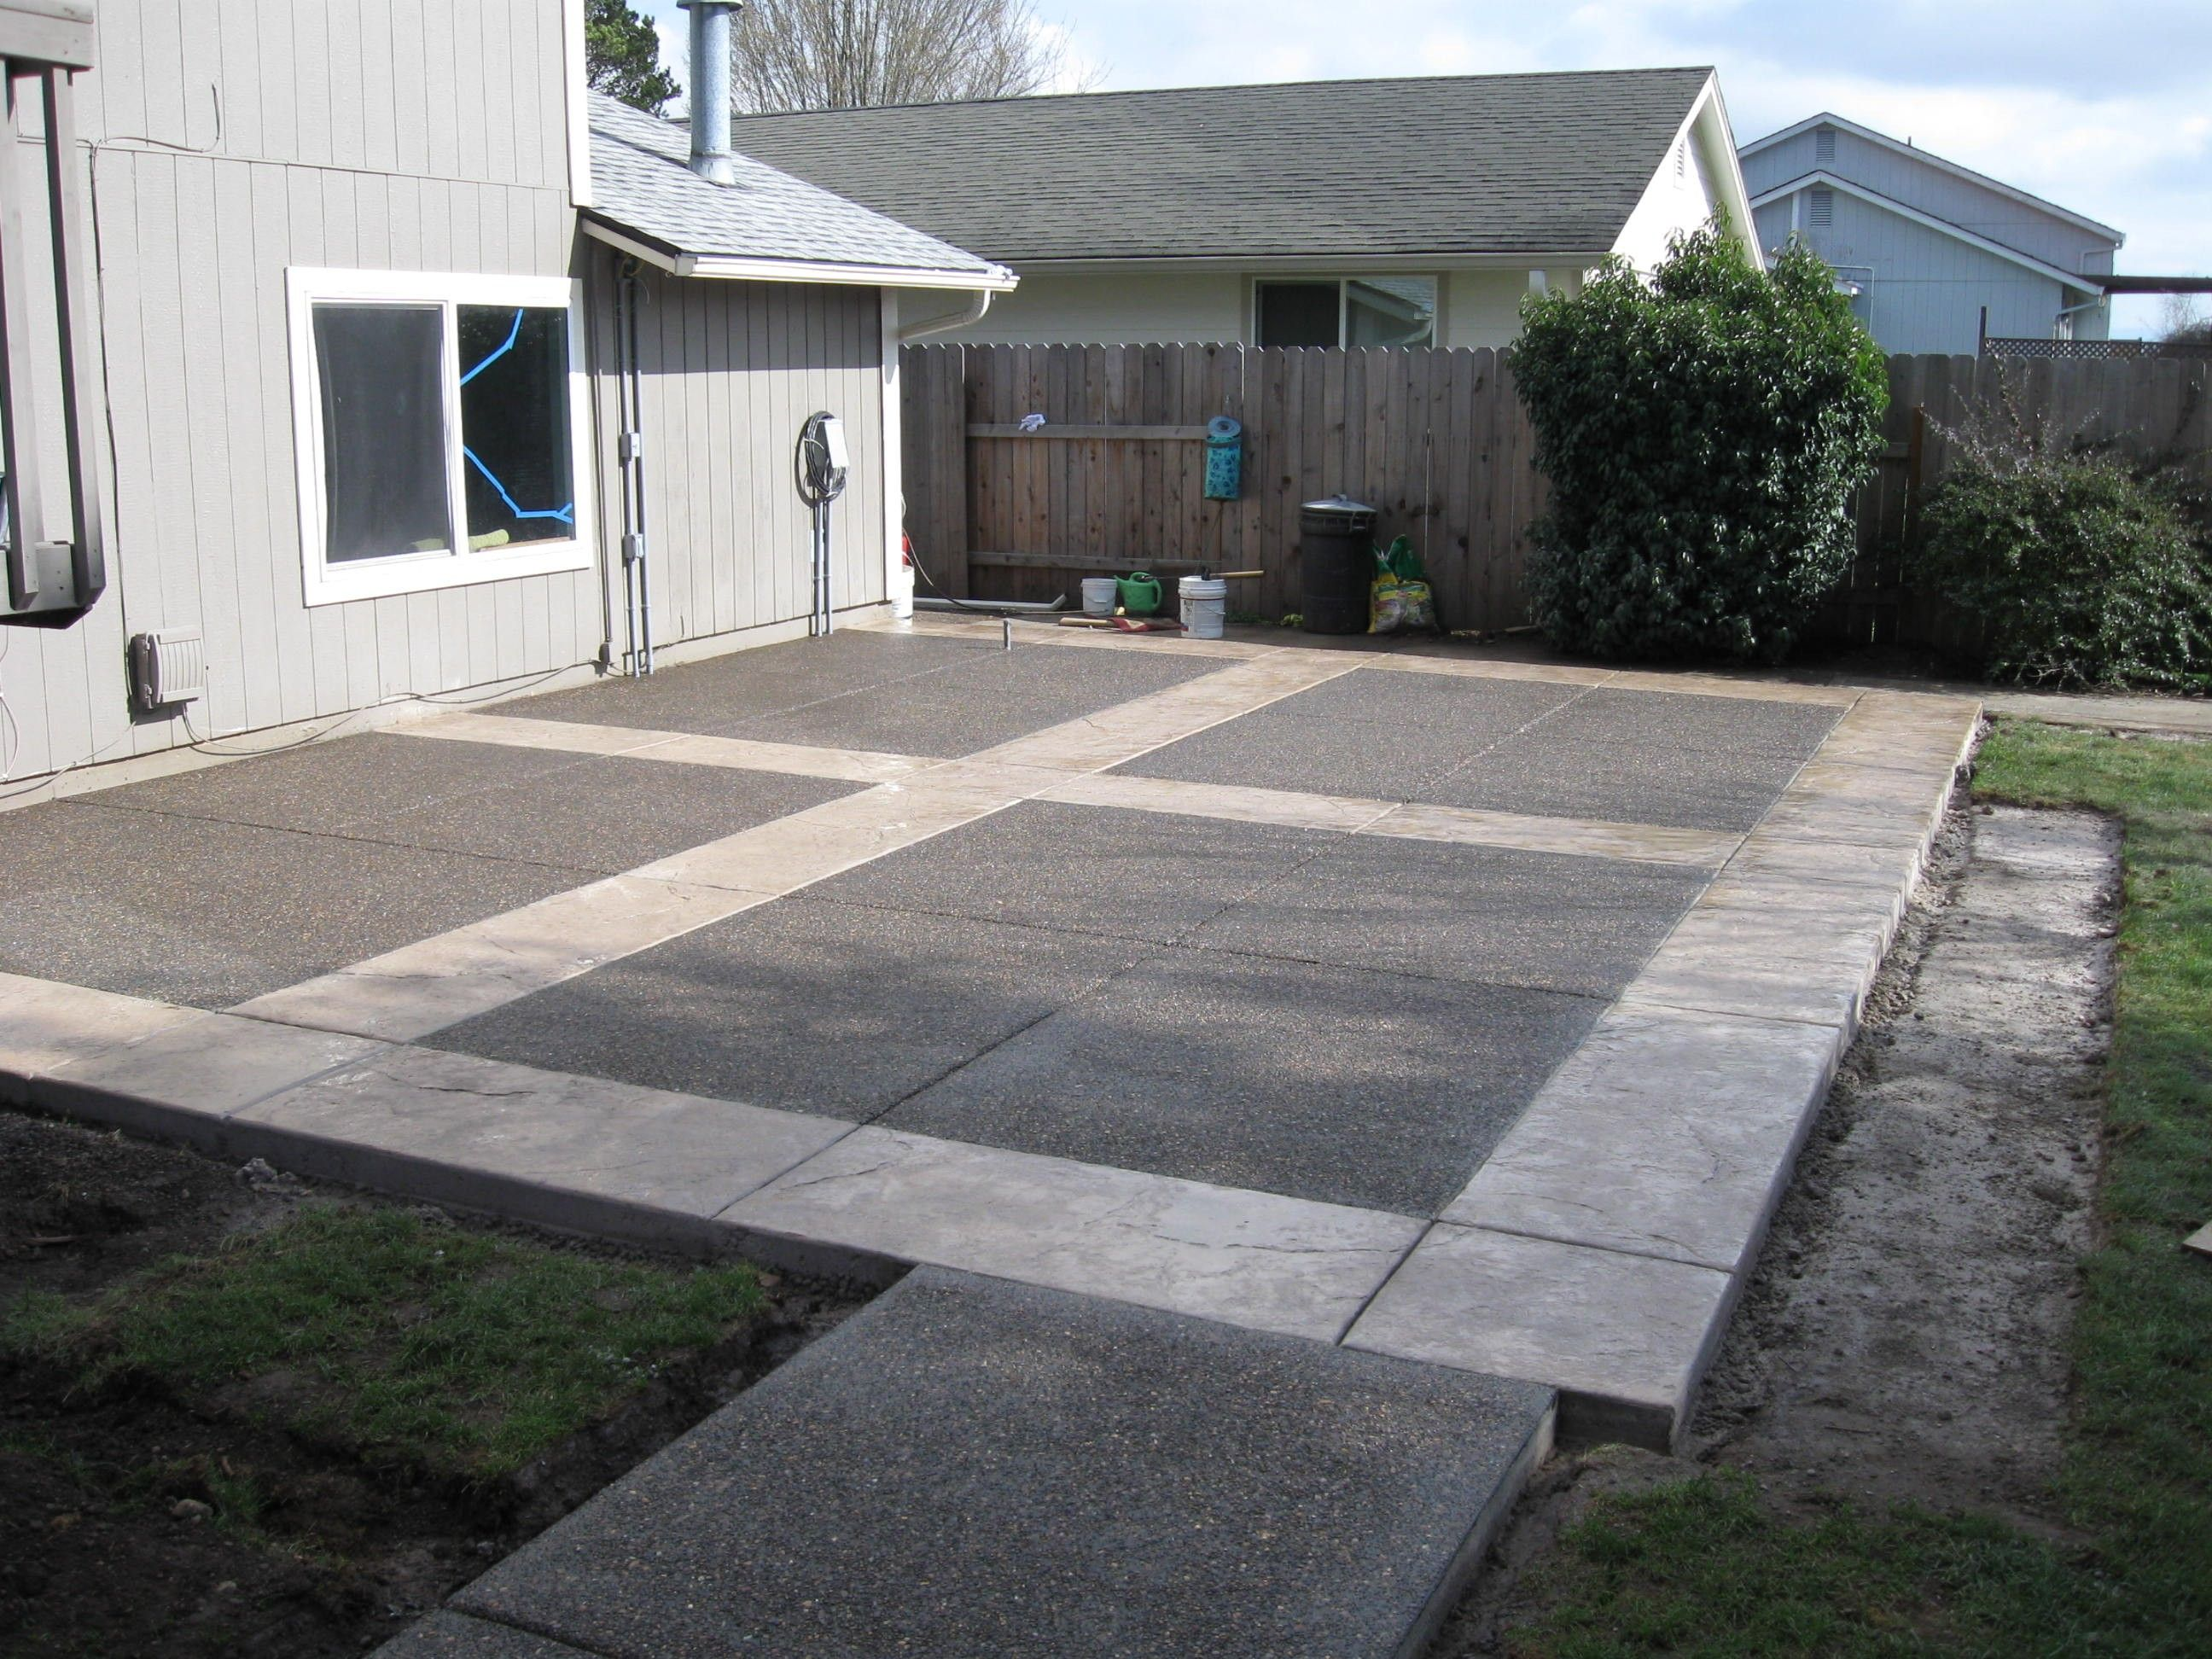 Awesome Stamped Concrete Patio Design With Many Benefits: Pavers Vs  Concrete Cost